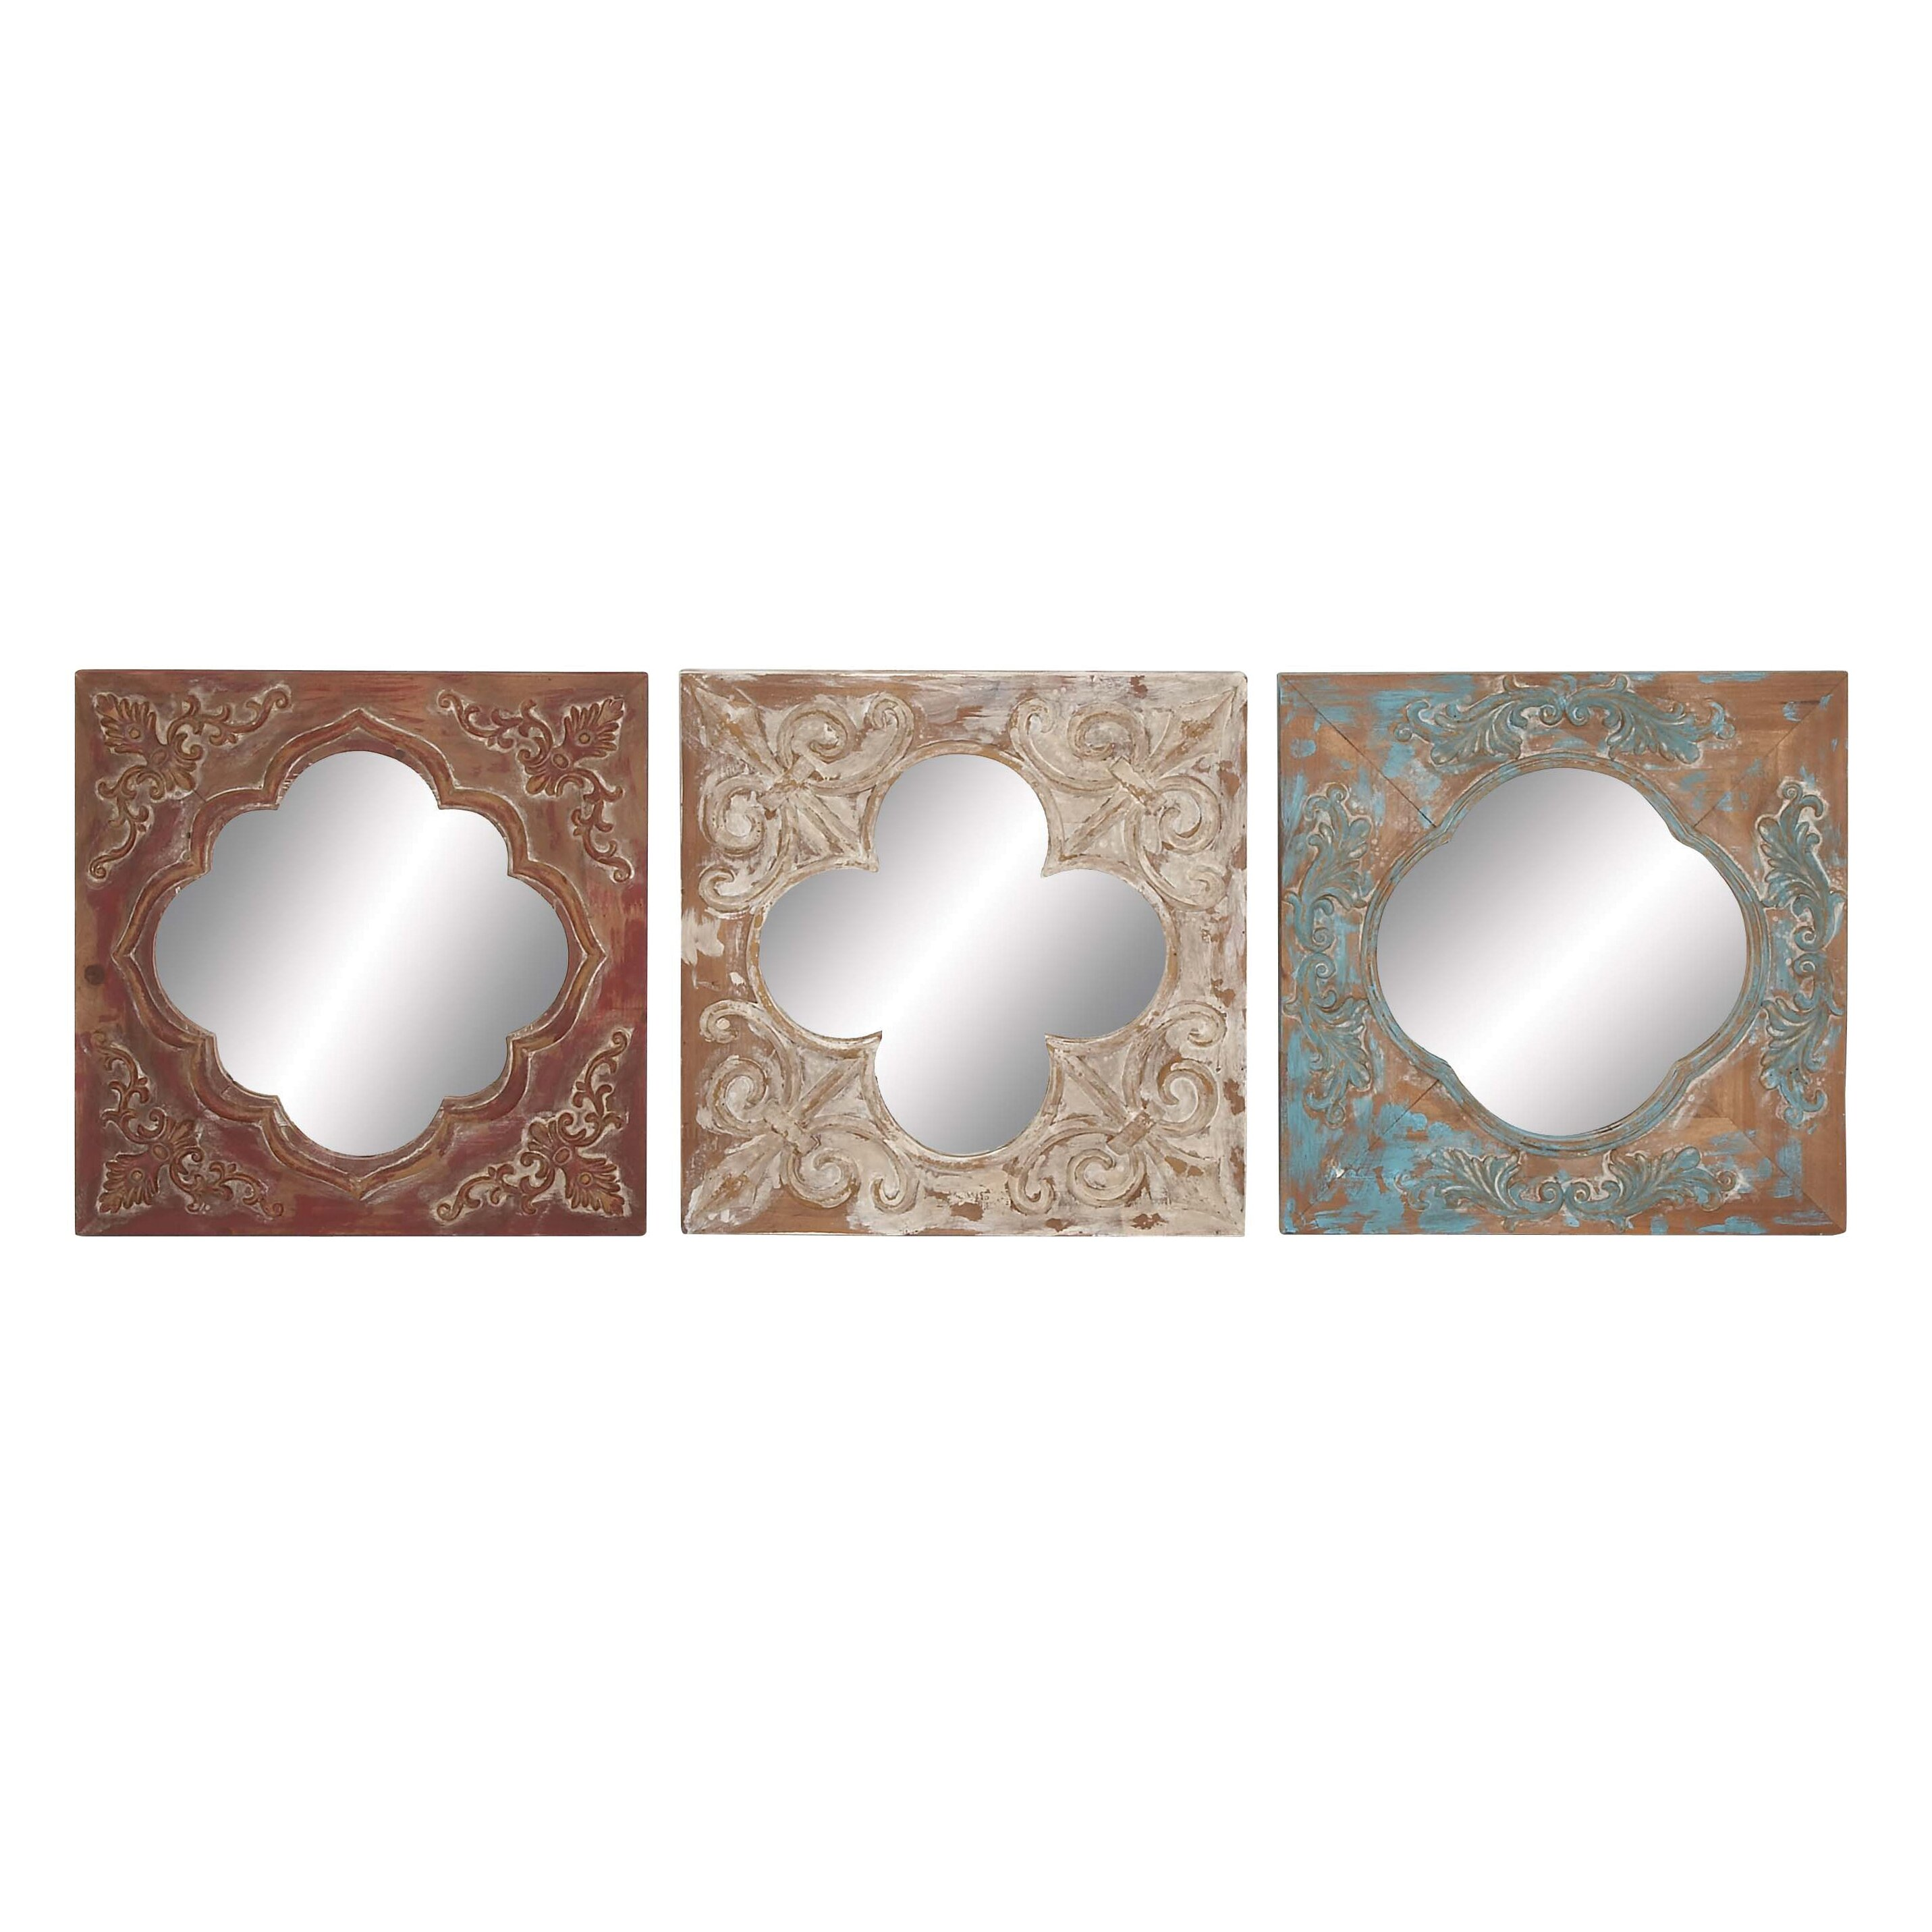 Cole - Grey 3 Piece Metal, Wood and Mirror Wall Decor Set